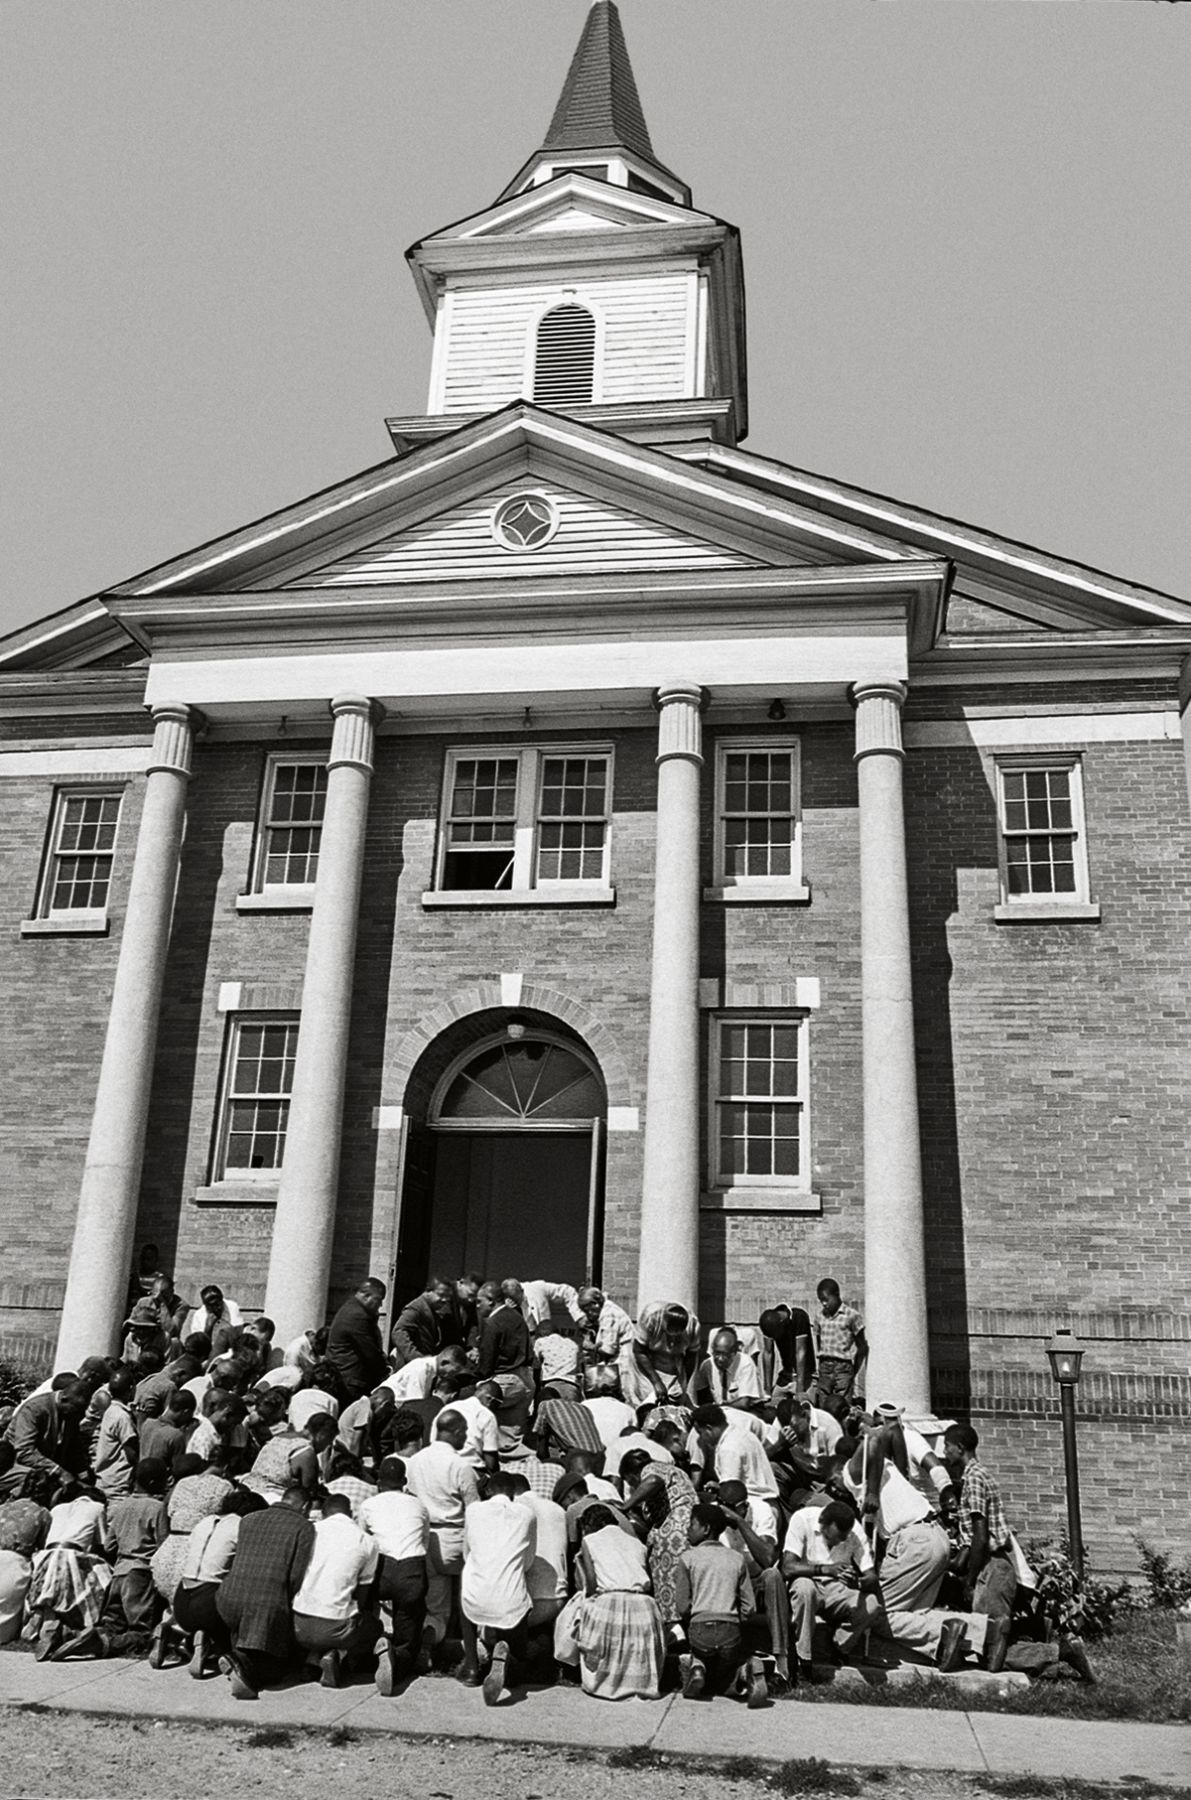 Crowd Praying on Steps of Church, Clarksdale, Mississipi, 1965, 20x 16Inches, Silver Gelatin Photograph, Edition of 25